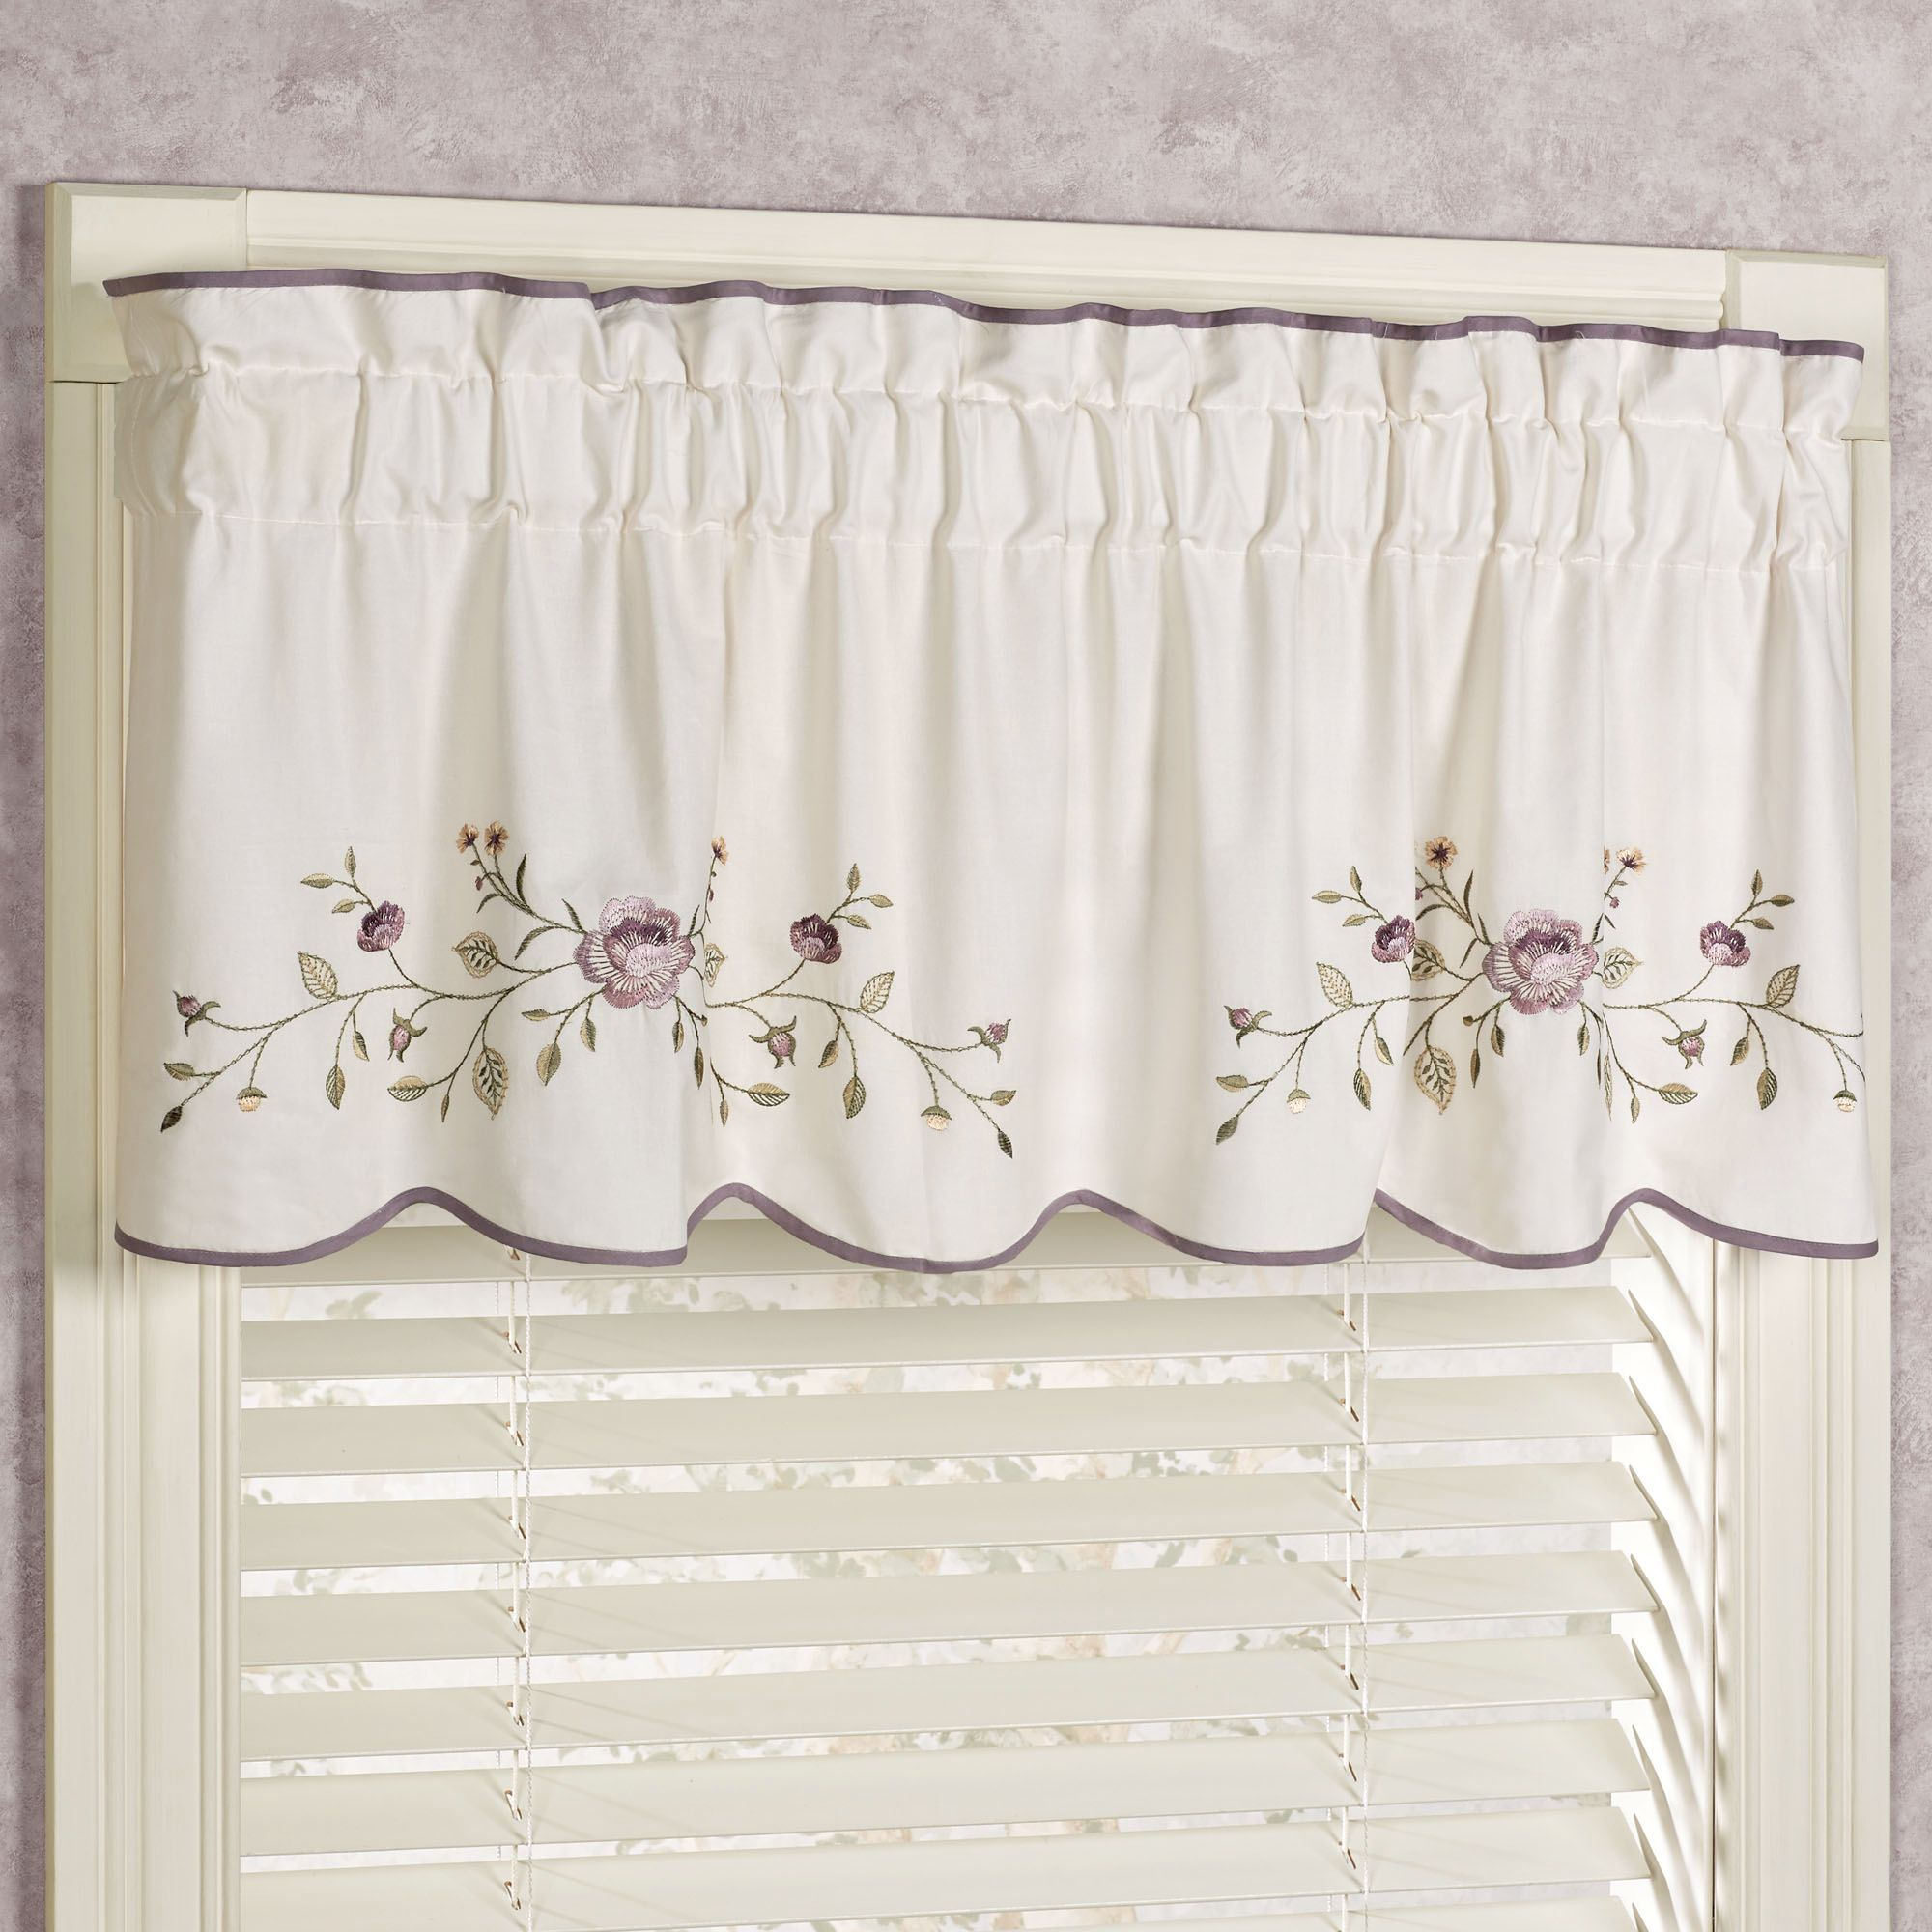 Vintage bloom embroidered window treatments for 18 x 60 window